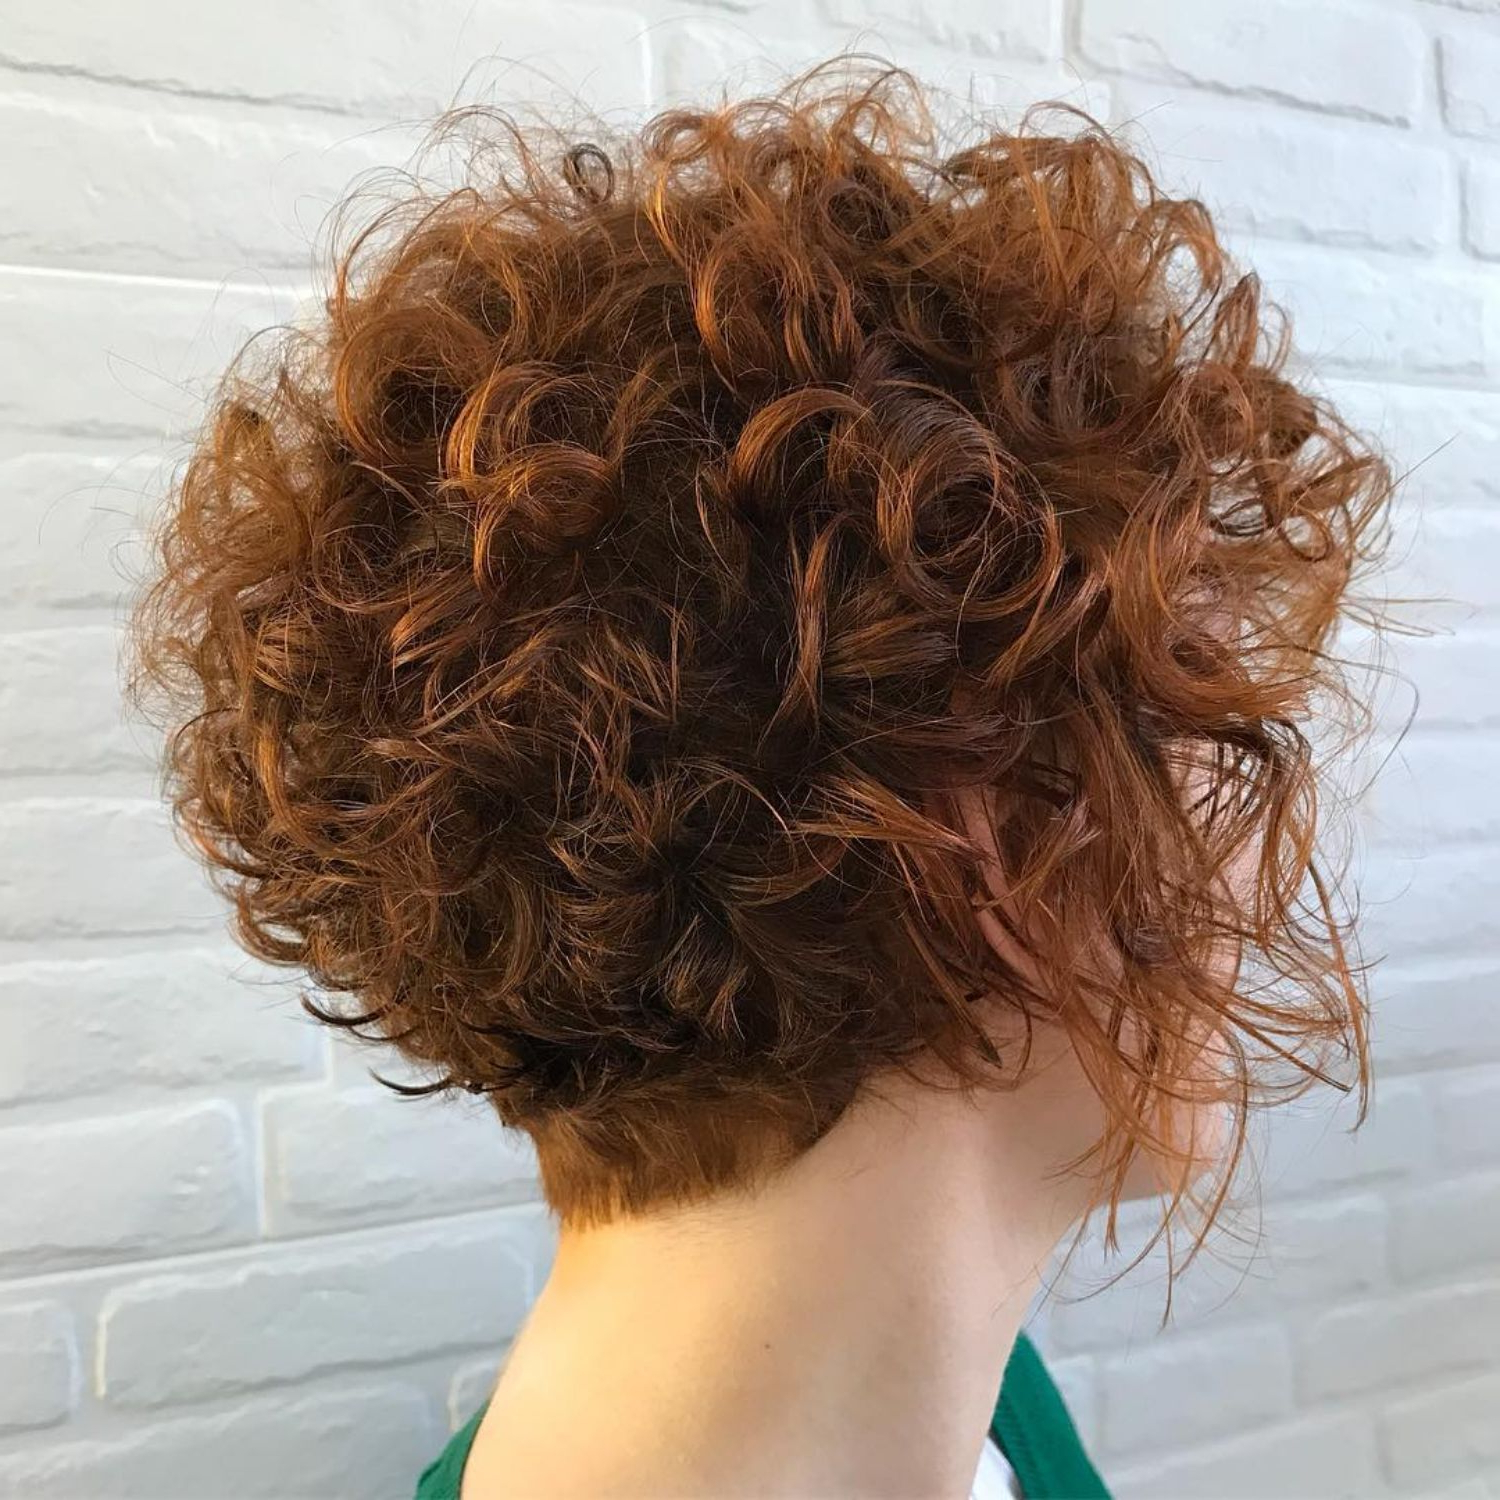 60 Most Delightful Short Wavy Hairstyles In 2018 | Hairstyles Intended For Short Bob Hairstyles With Whipped Curls And Babylights (Gallery 8 of 25)